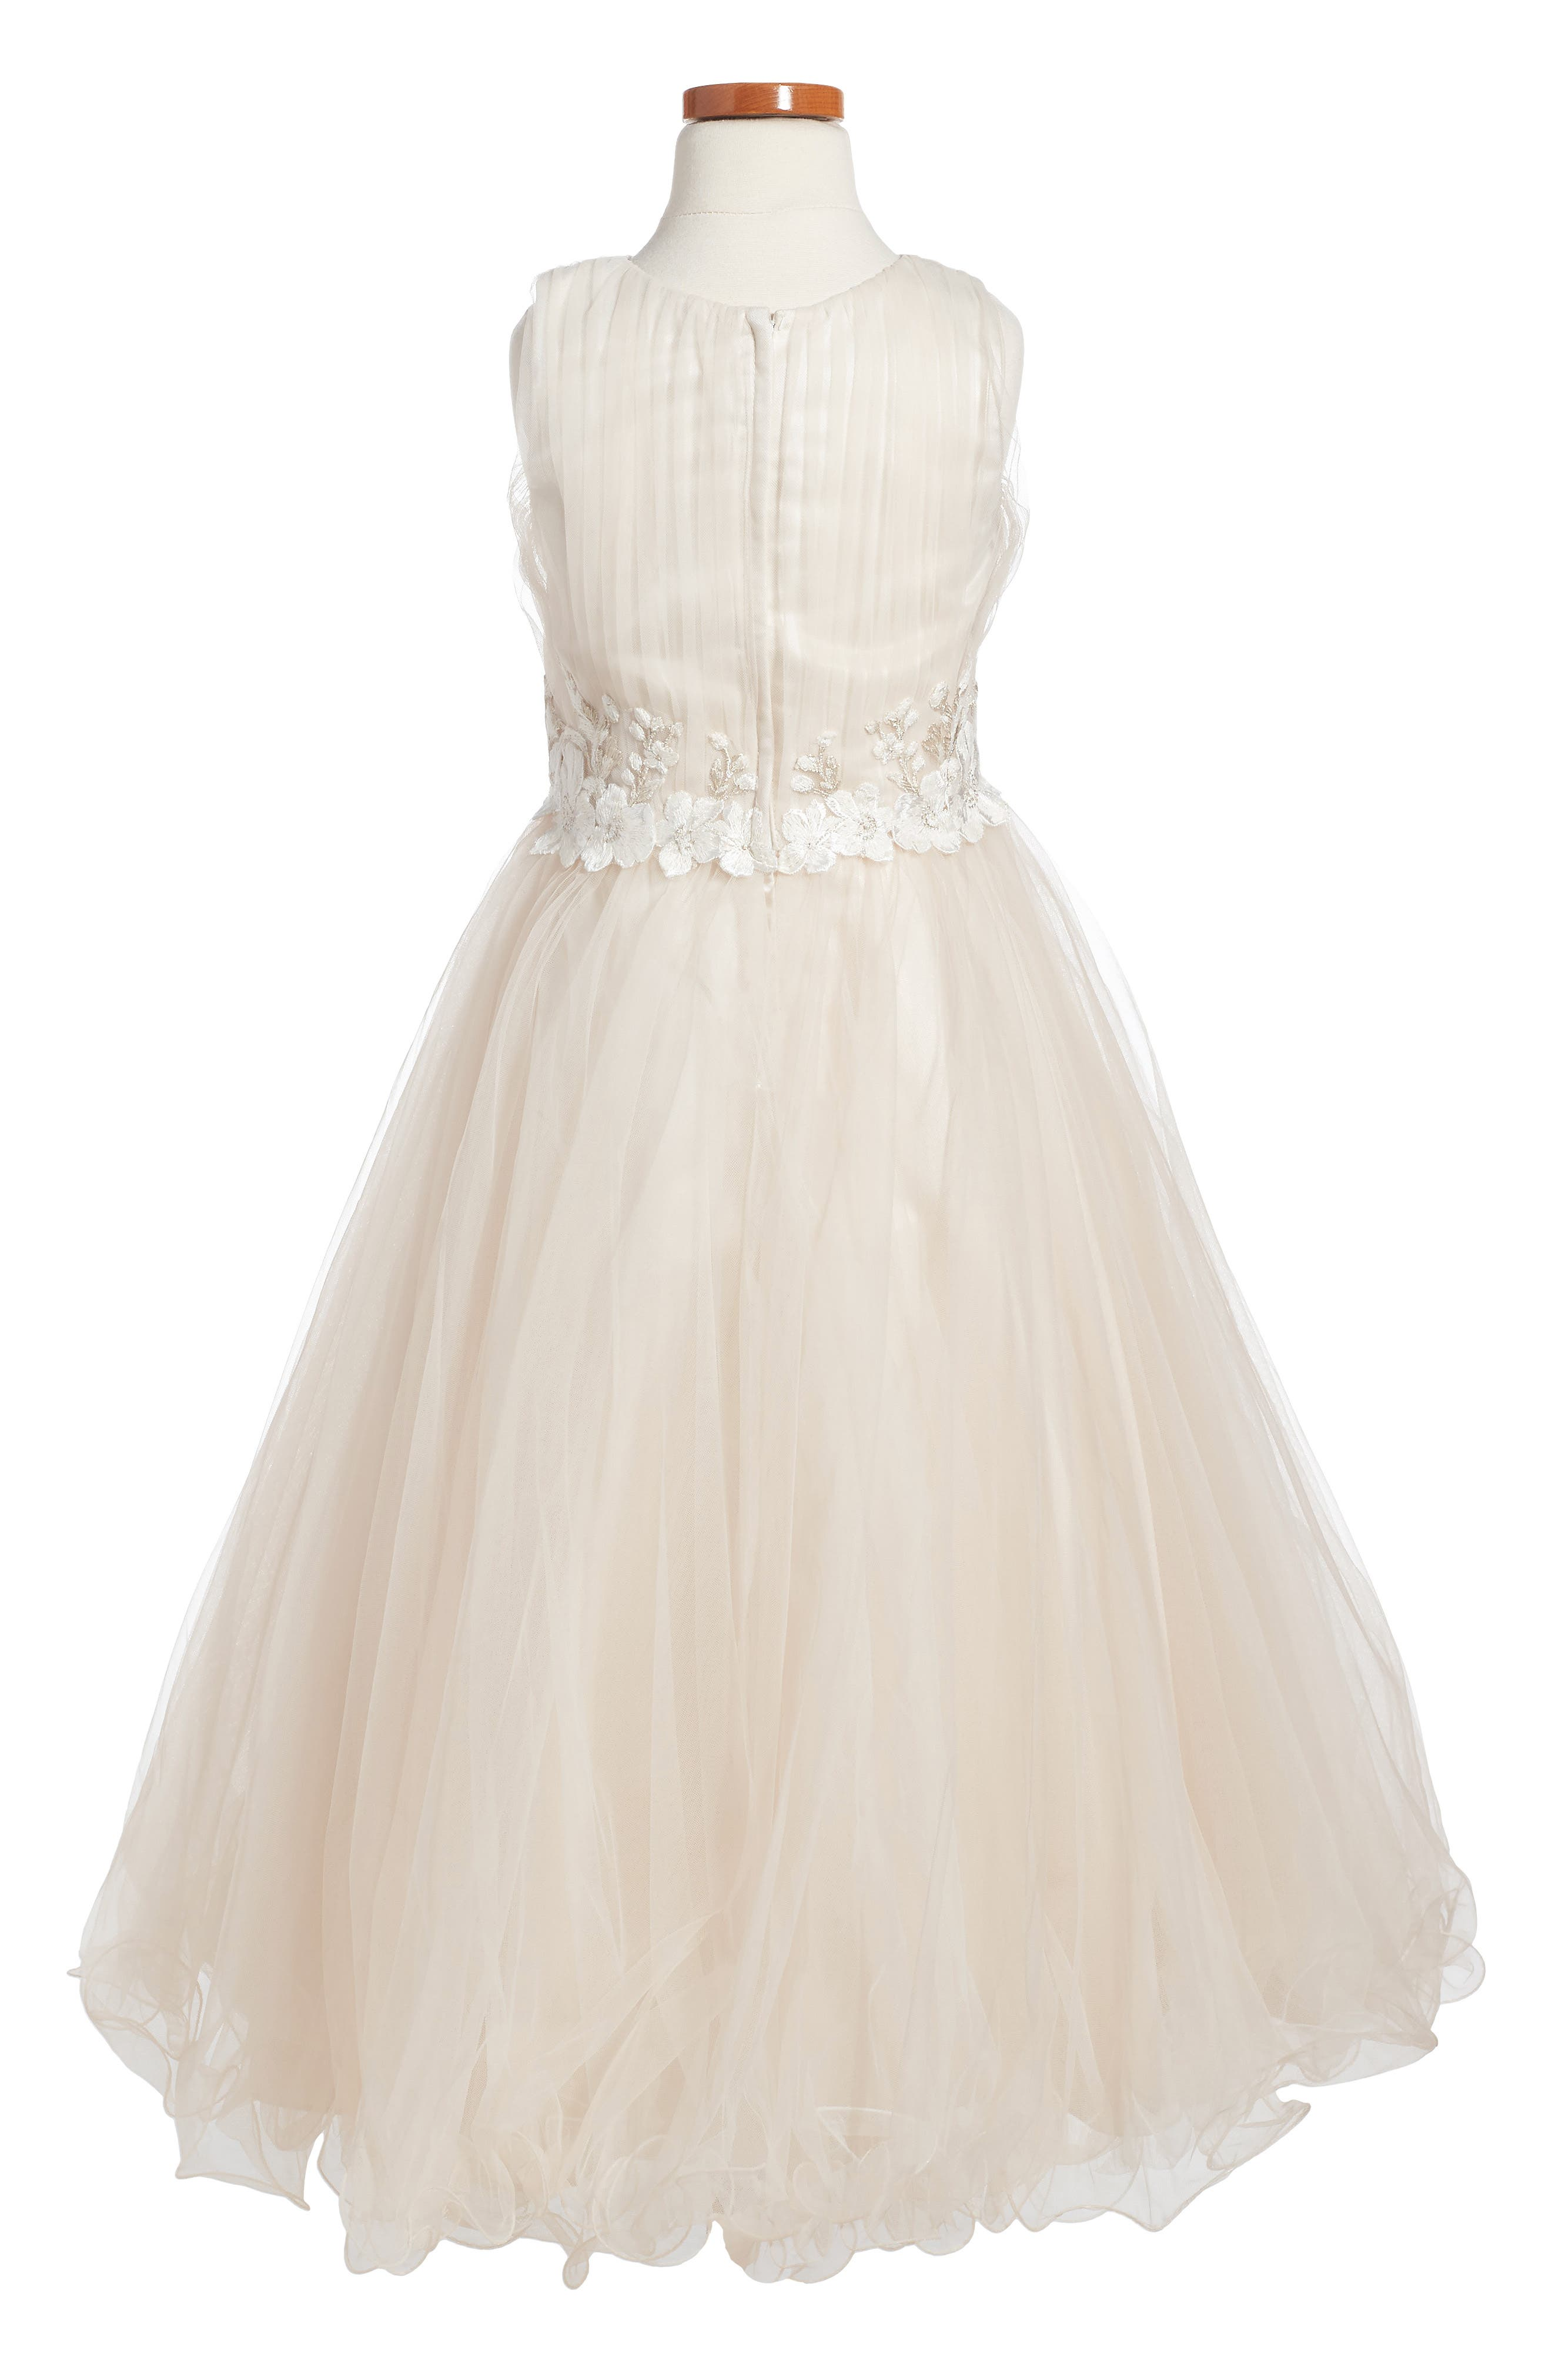 Lace & Tulle Dress,                             Alternate thumbnail 2, color,                             Stone/ Oyster